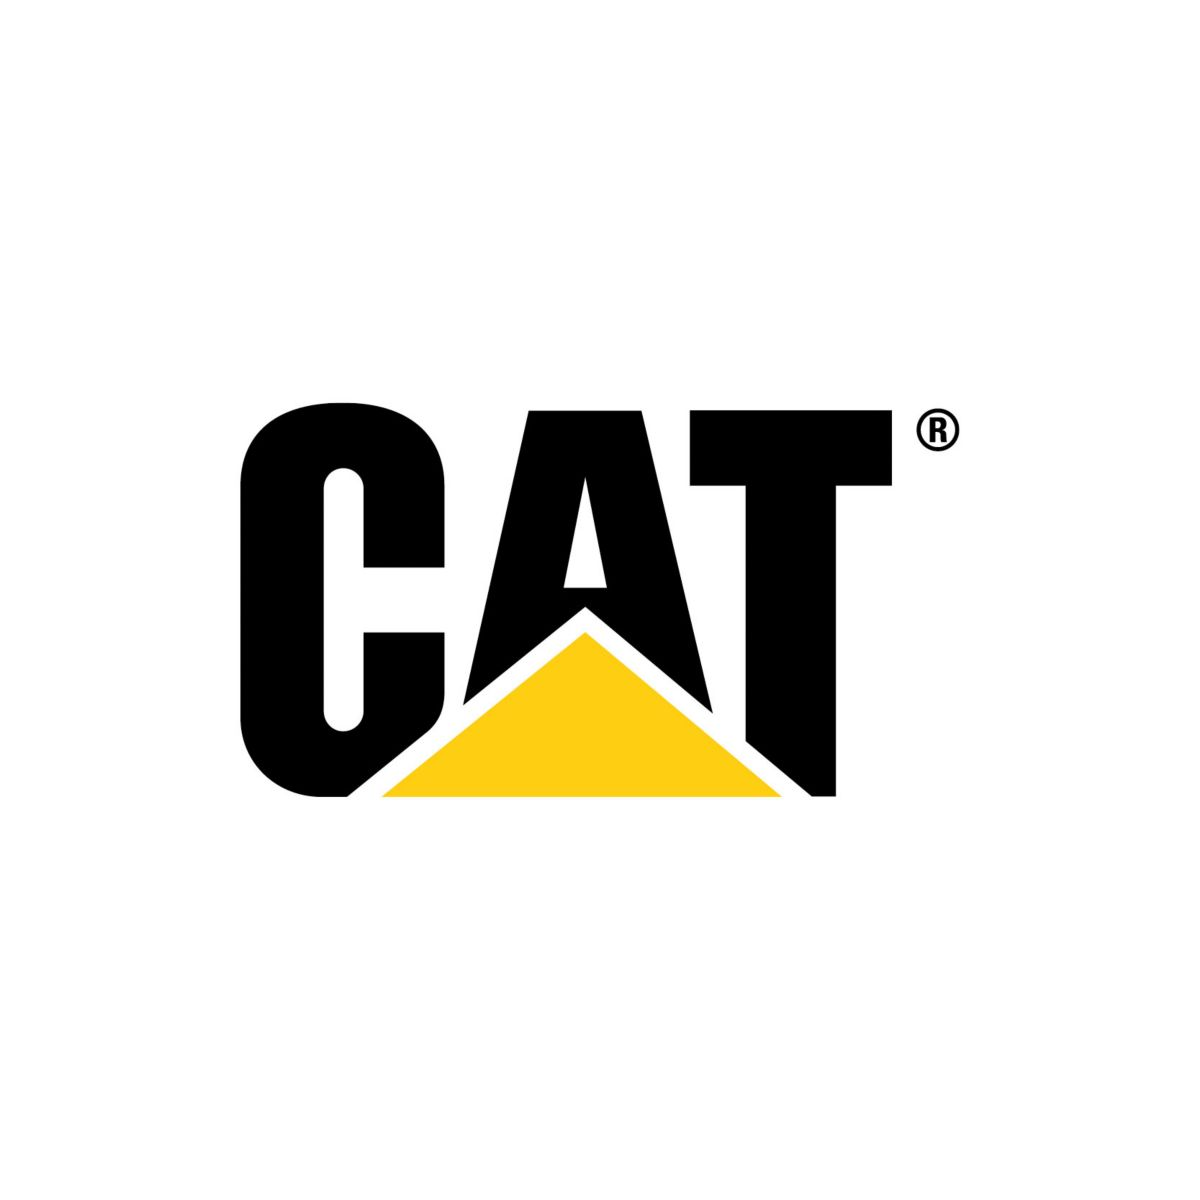 Cat Wear & Maintenance Parts